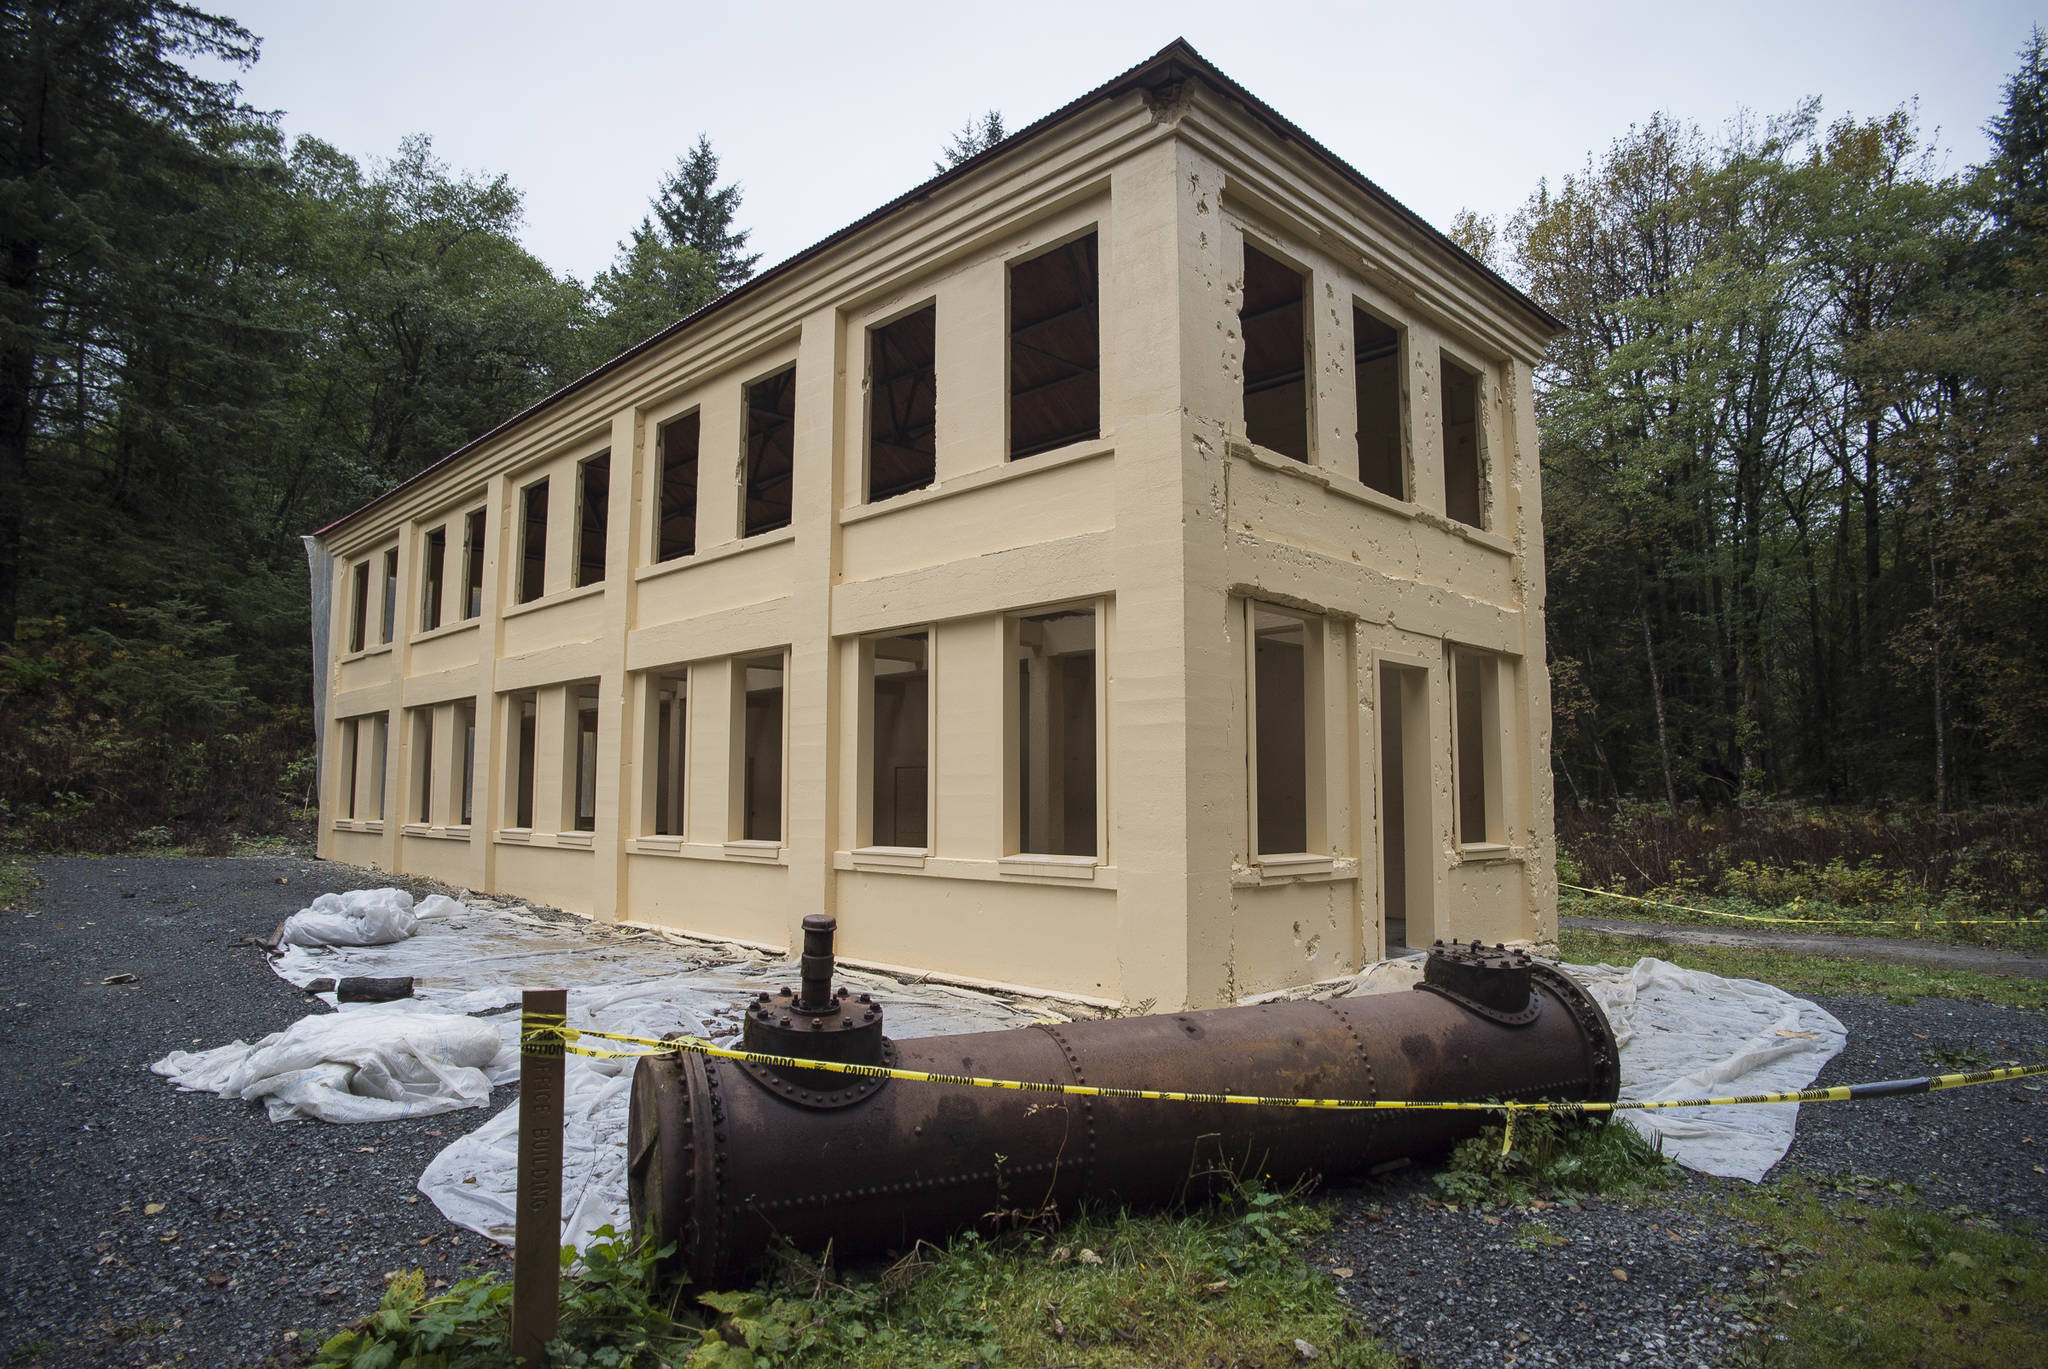 The New Office Building at the Treadwell Mine Historic Area, shown on Thursday, Oct. 11, 2018, has received a new metal roof and a fresh coat of paint inside and out. (Michael Penn | Juneau Empire)